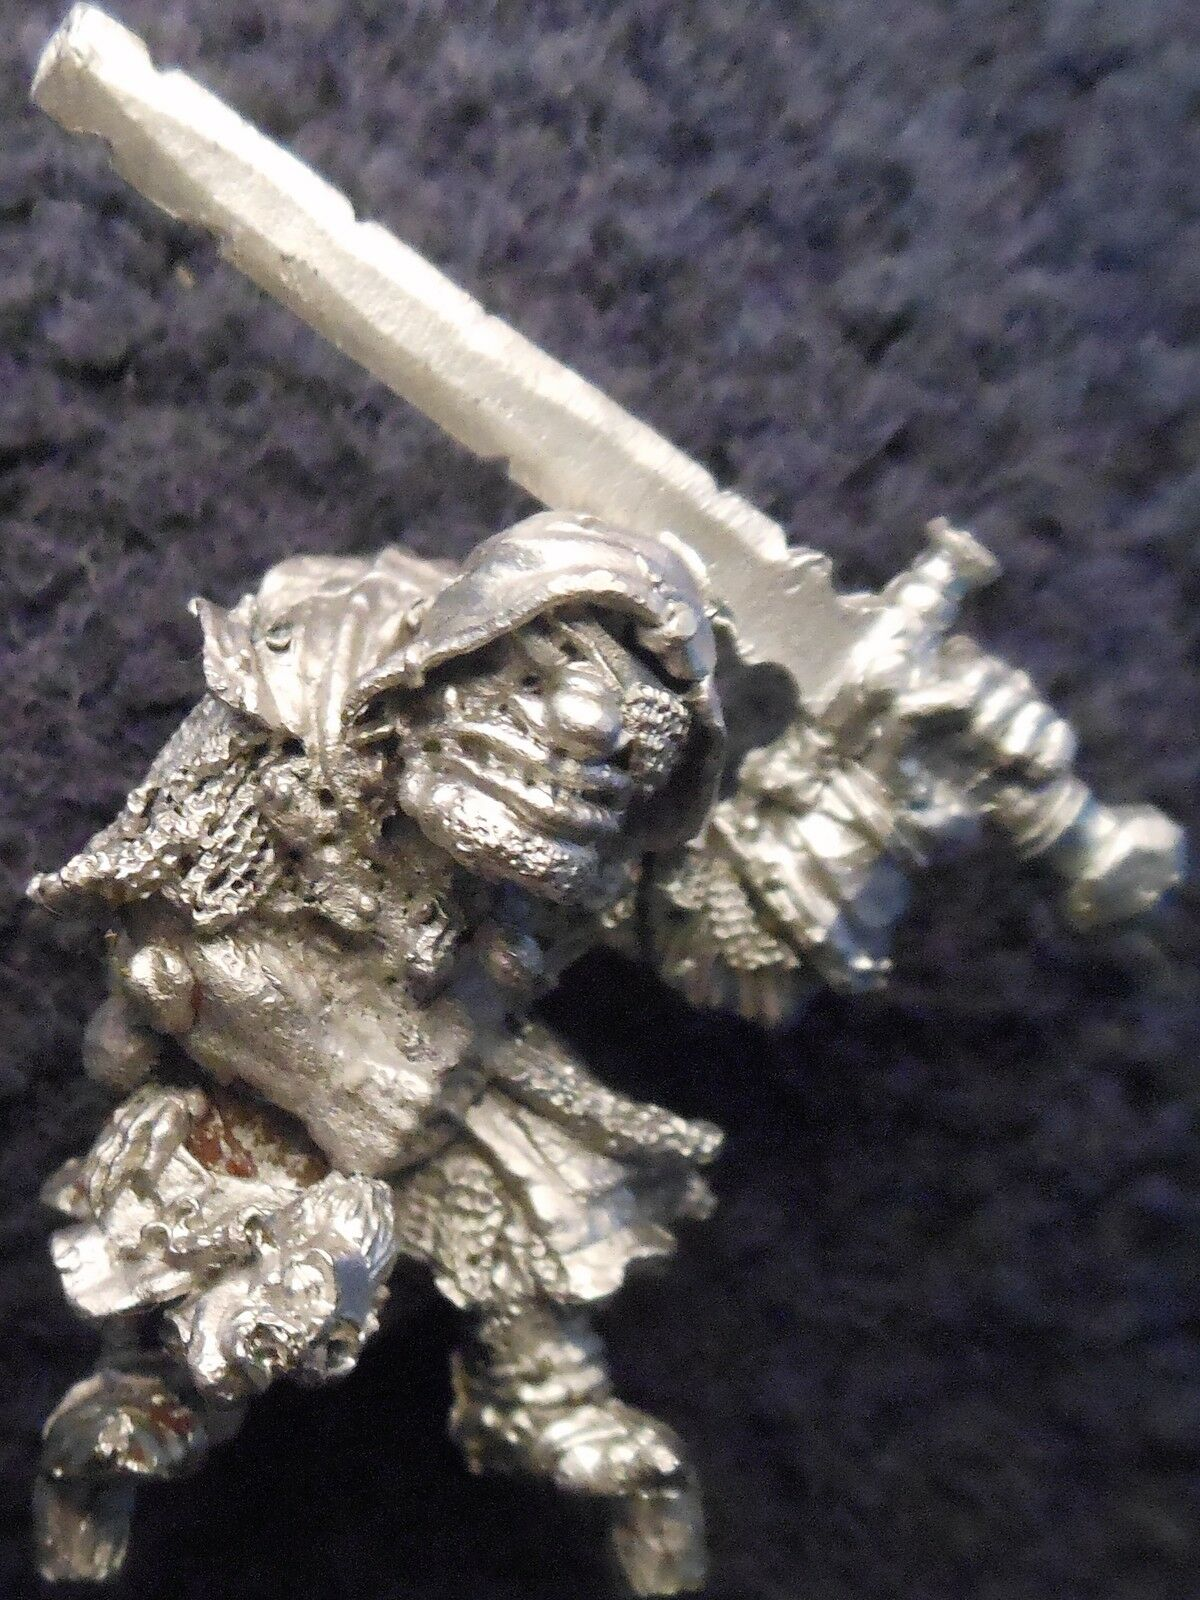 1985 Giant Ogre Bounty Hunter C23 Warhammer Army Kingdoms Ogryn Games Workshop